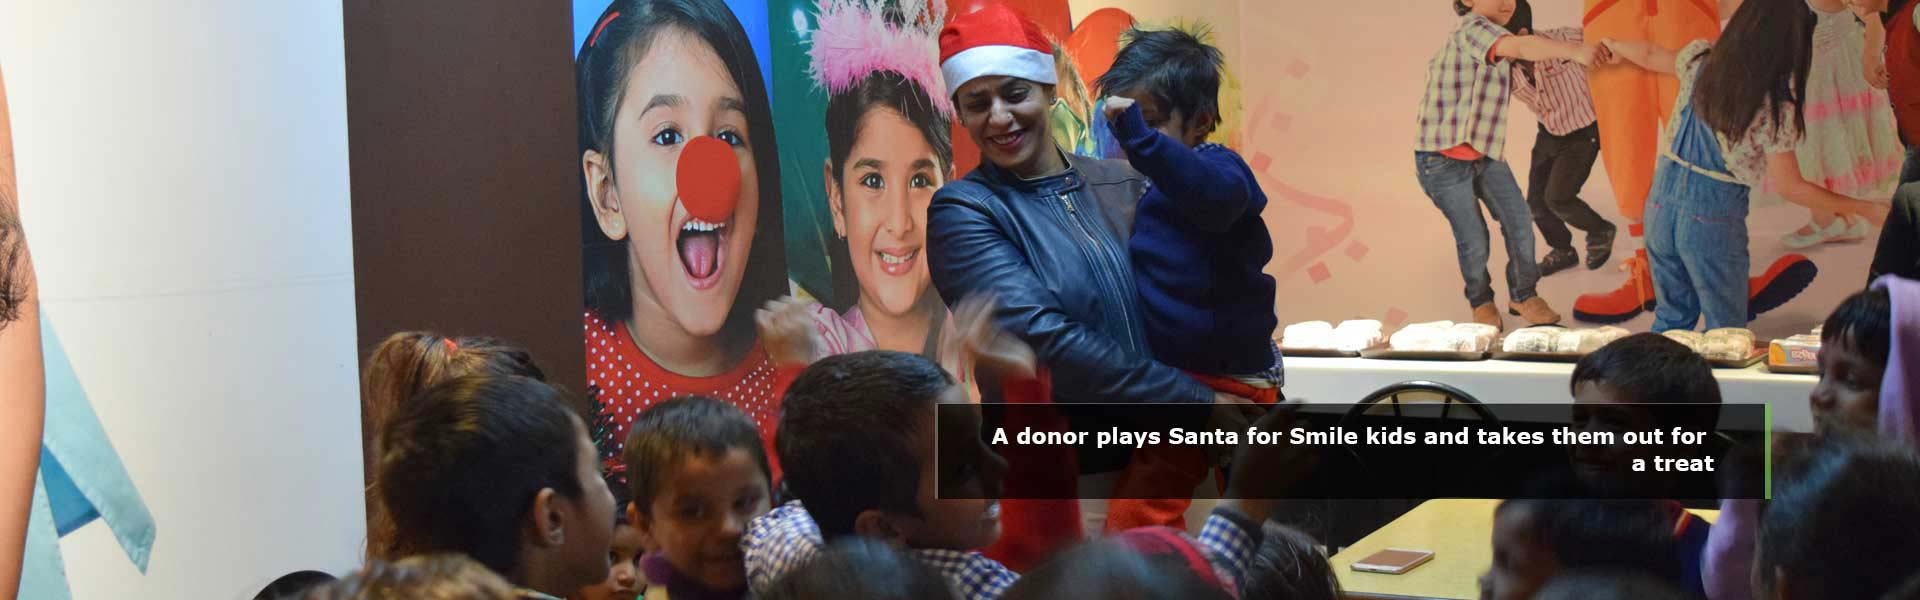 Smile Foundation - A donor plays Santa for Smile kids and takes them out for a treat